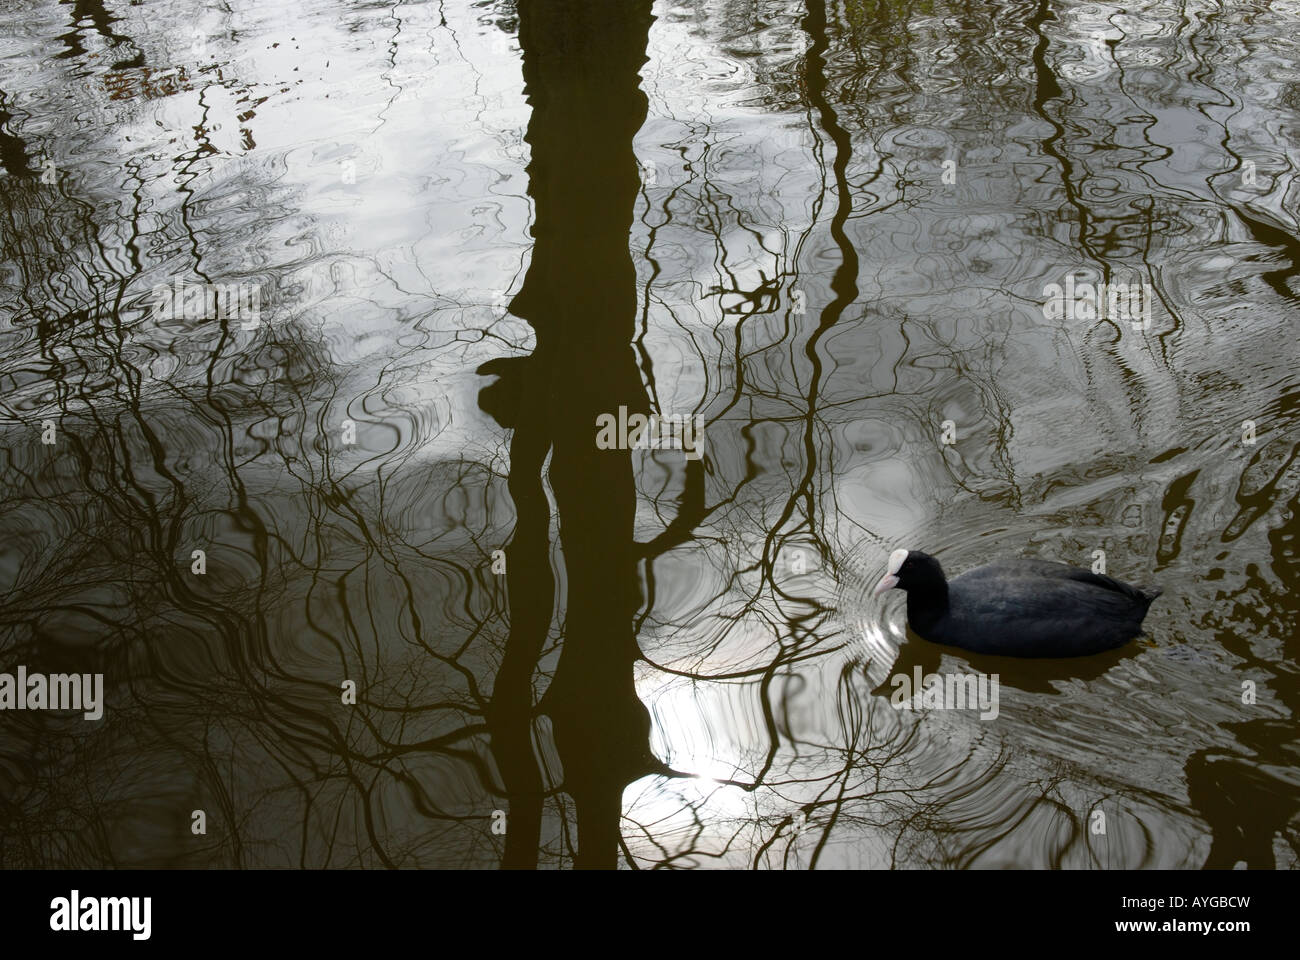 COOT IN  A LAKE - Stock Image